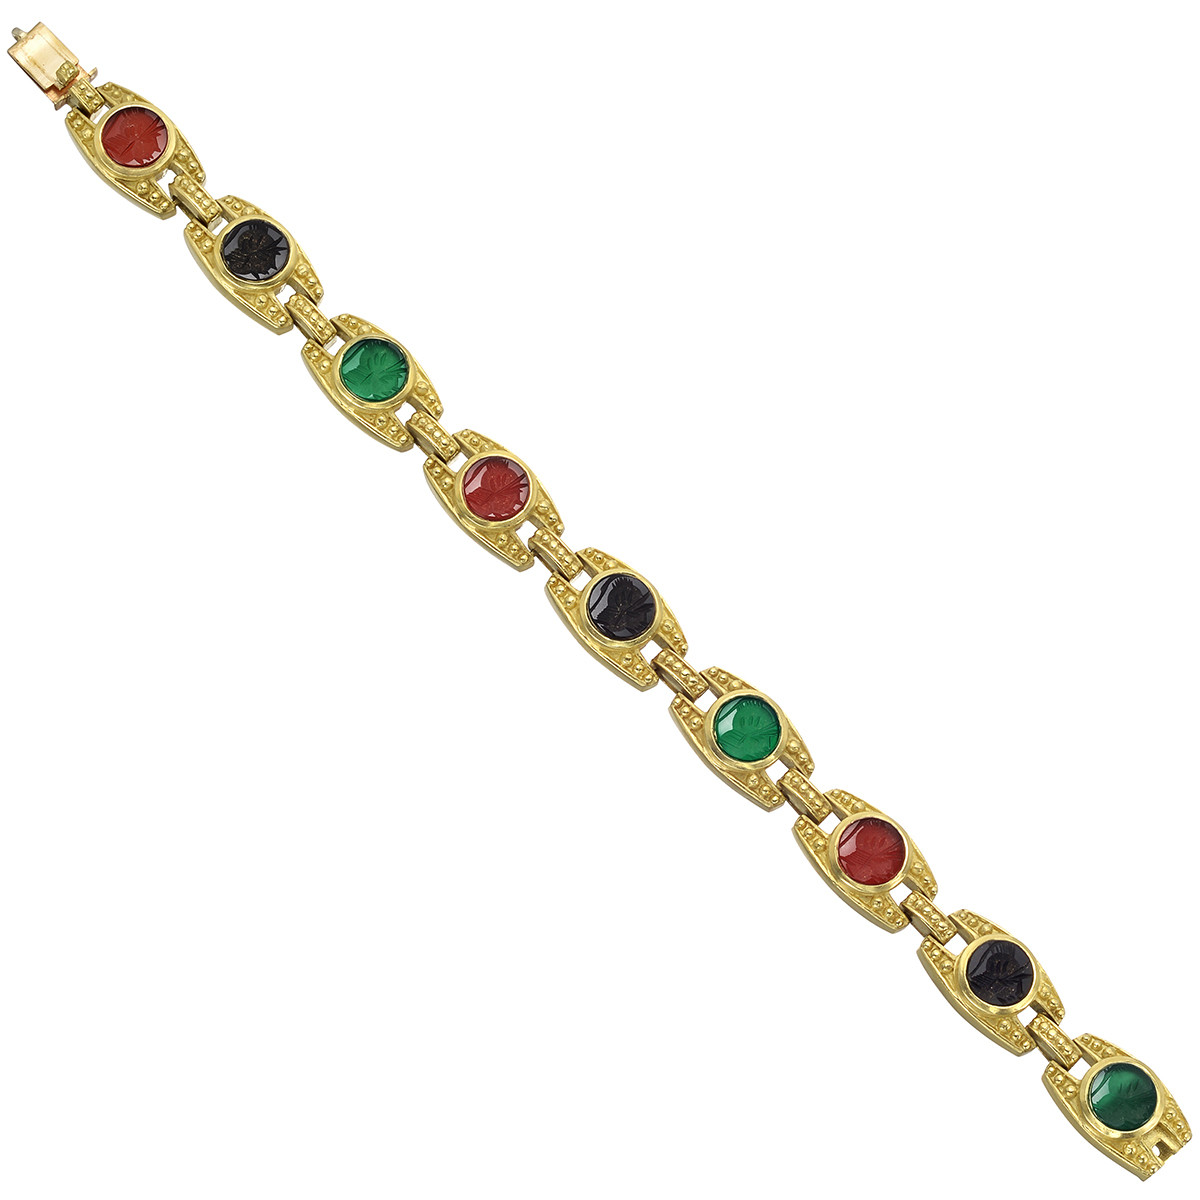 18k Yellow Gold & Gemstone Intaglio Bracelet